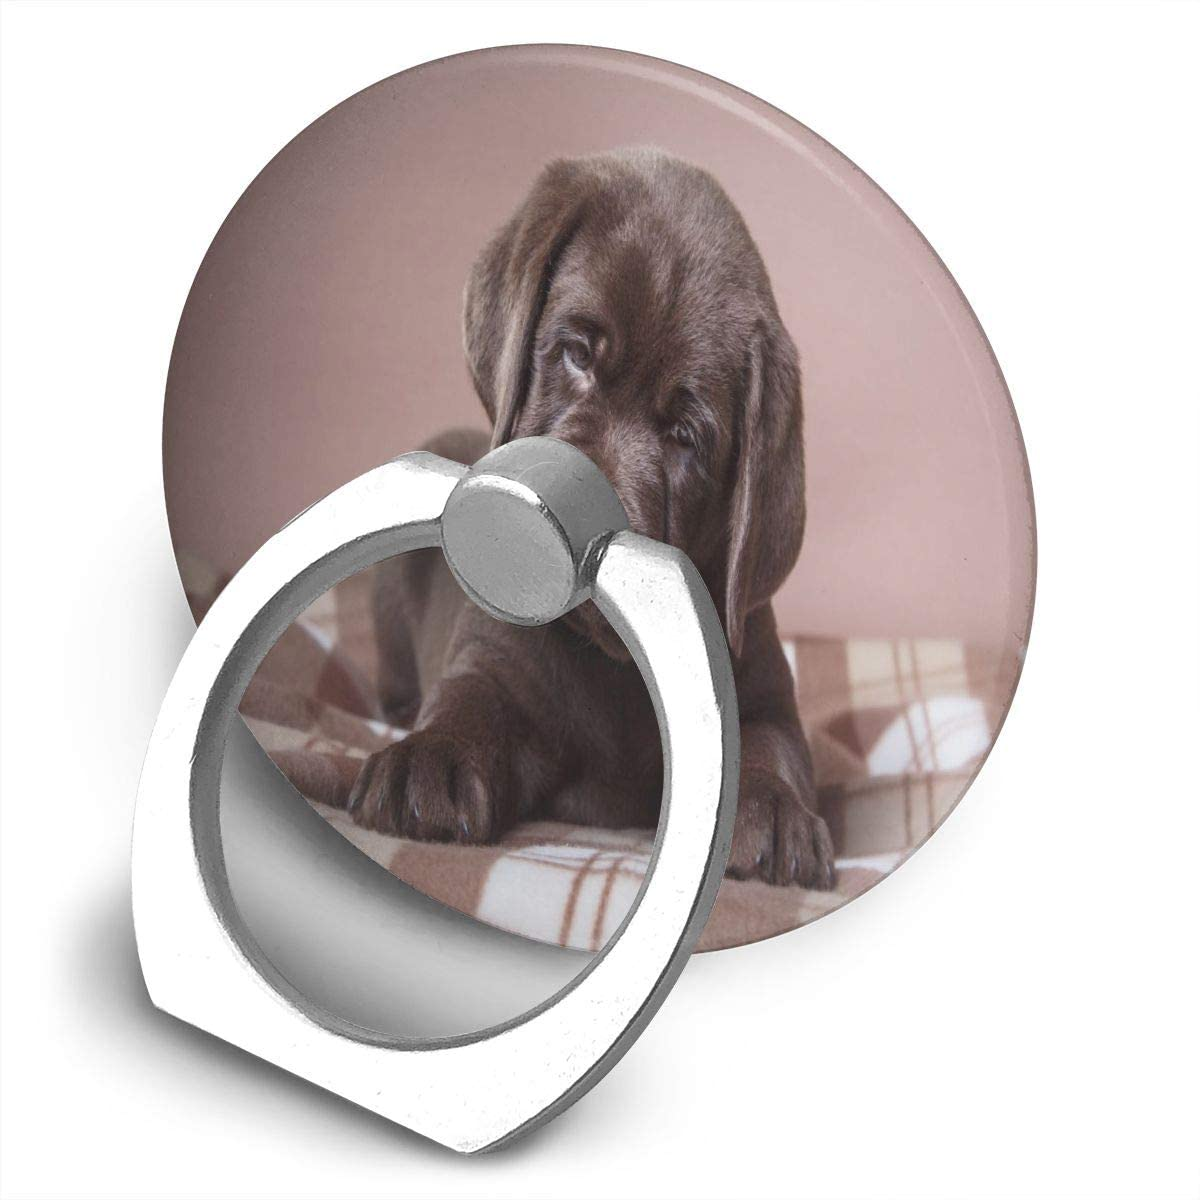 Cell Phone Ring Holder Stand Marvellous Brown Labrador Dog Puppy Adjustable 360°Rotation Round Universal Finger Grip Loop Kickstand with Silver Metal Phone Holder for Women Kids Men Ladies Smartphone